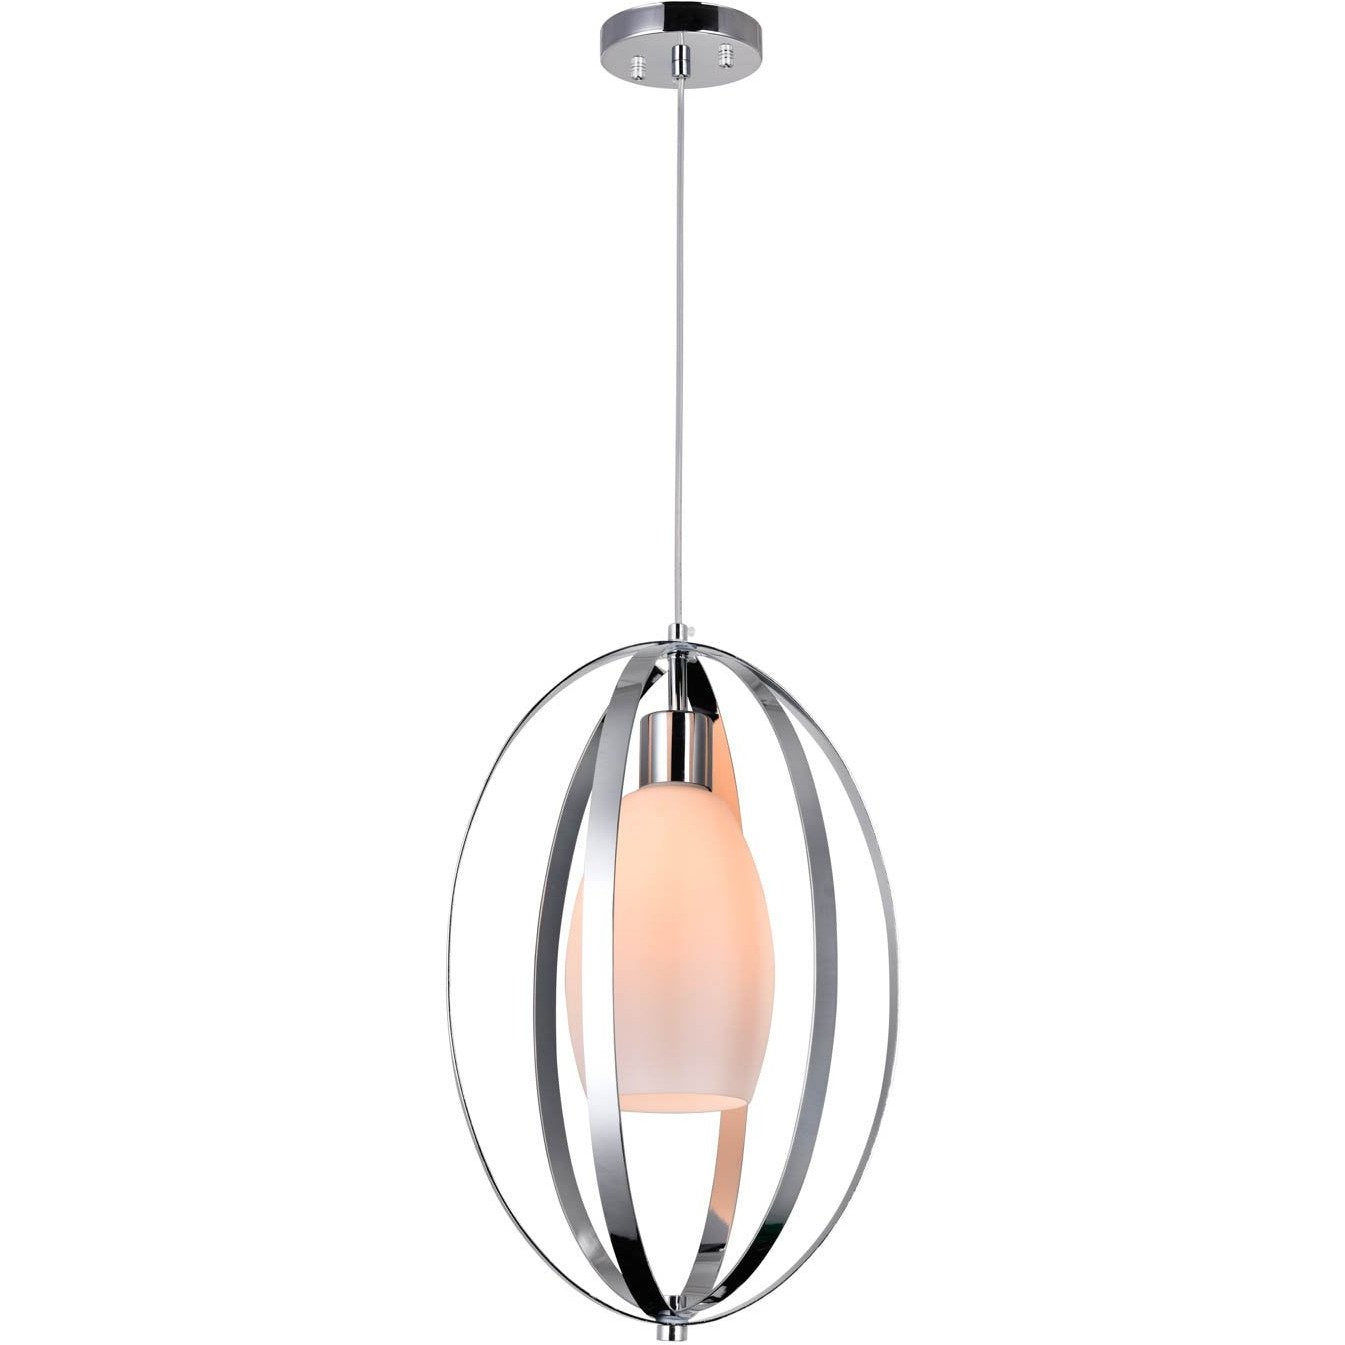 CWI Lighting Pendants Chrome Dahlia 1 Light Down Mini Pendant with Chrome finish by CWI Lighting 9801P12-1-O-601